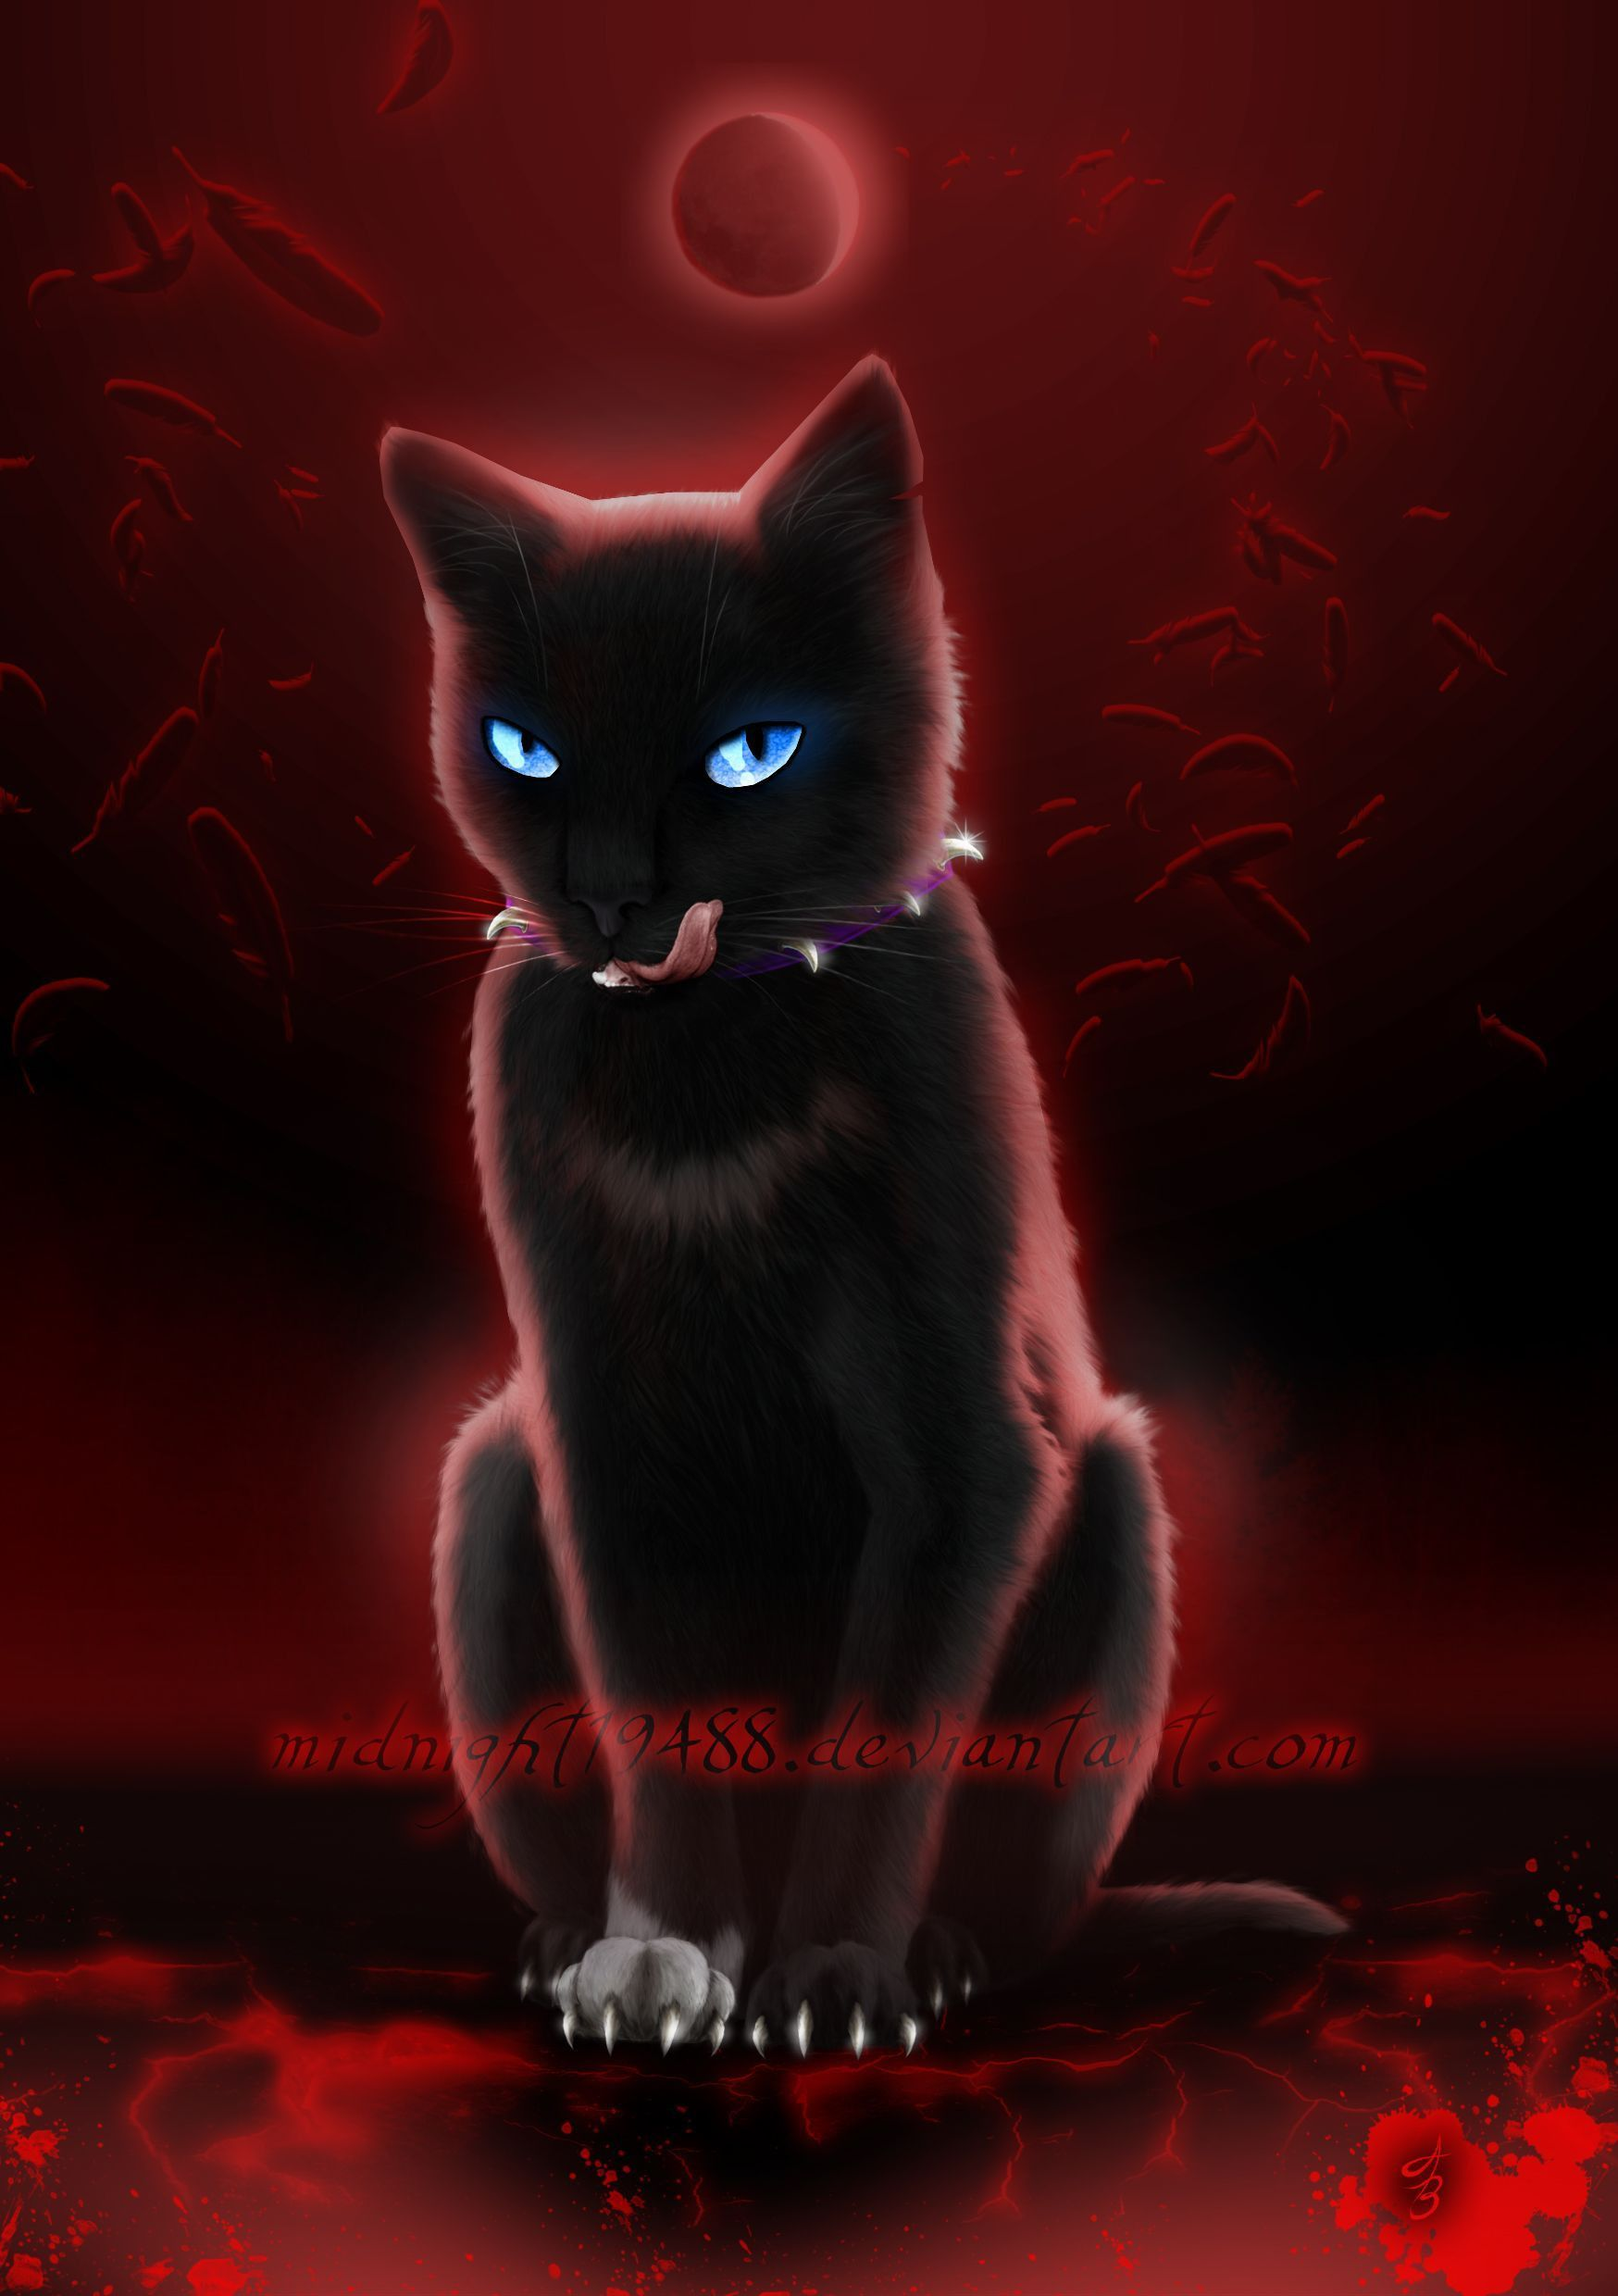 Red Cat Wallpapers 34 Best Free Red Cat Backgrounds For Mac Warrior Cats Scourge Warrior Cats Art Warrior Cats